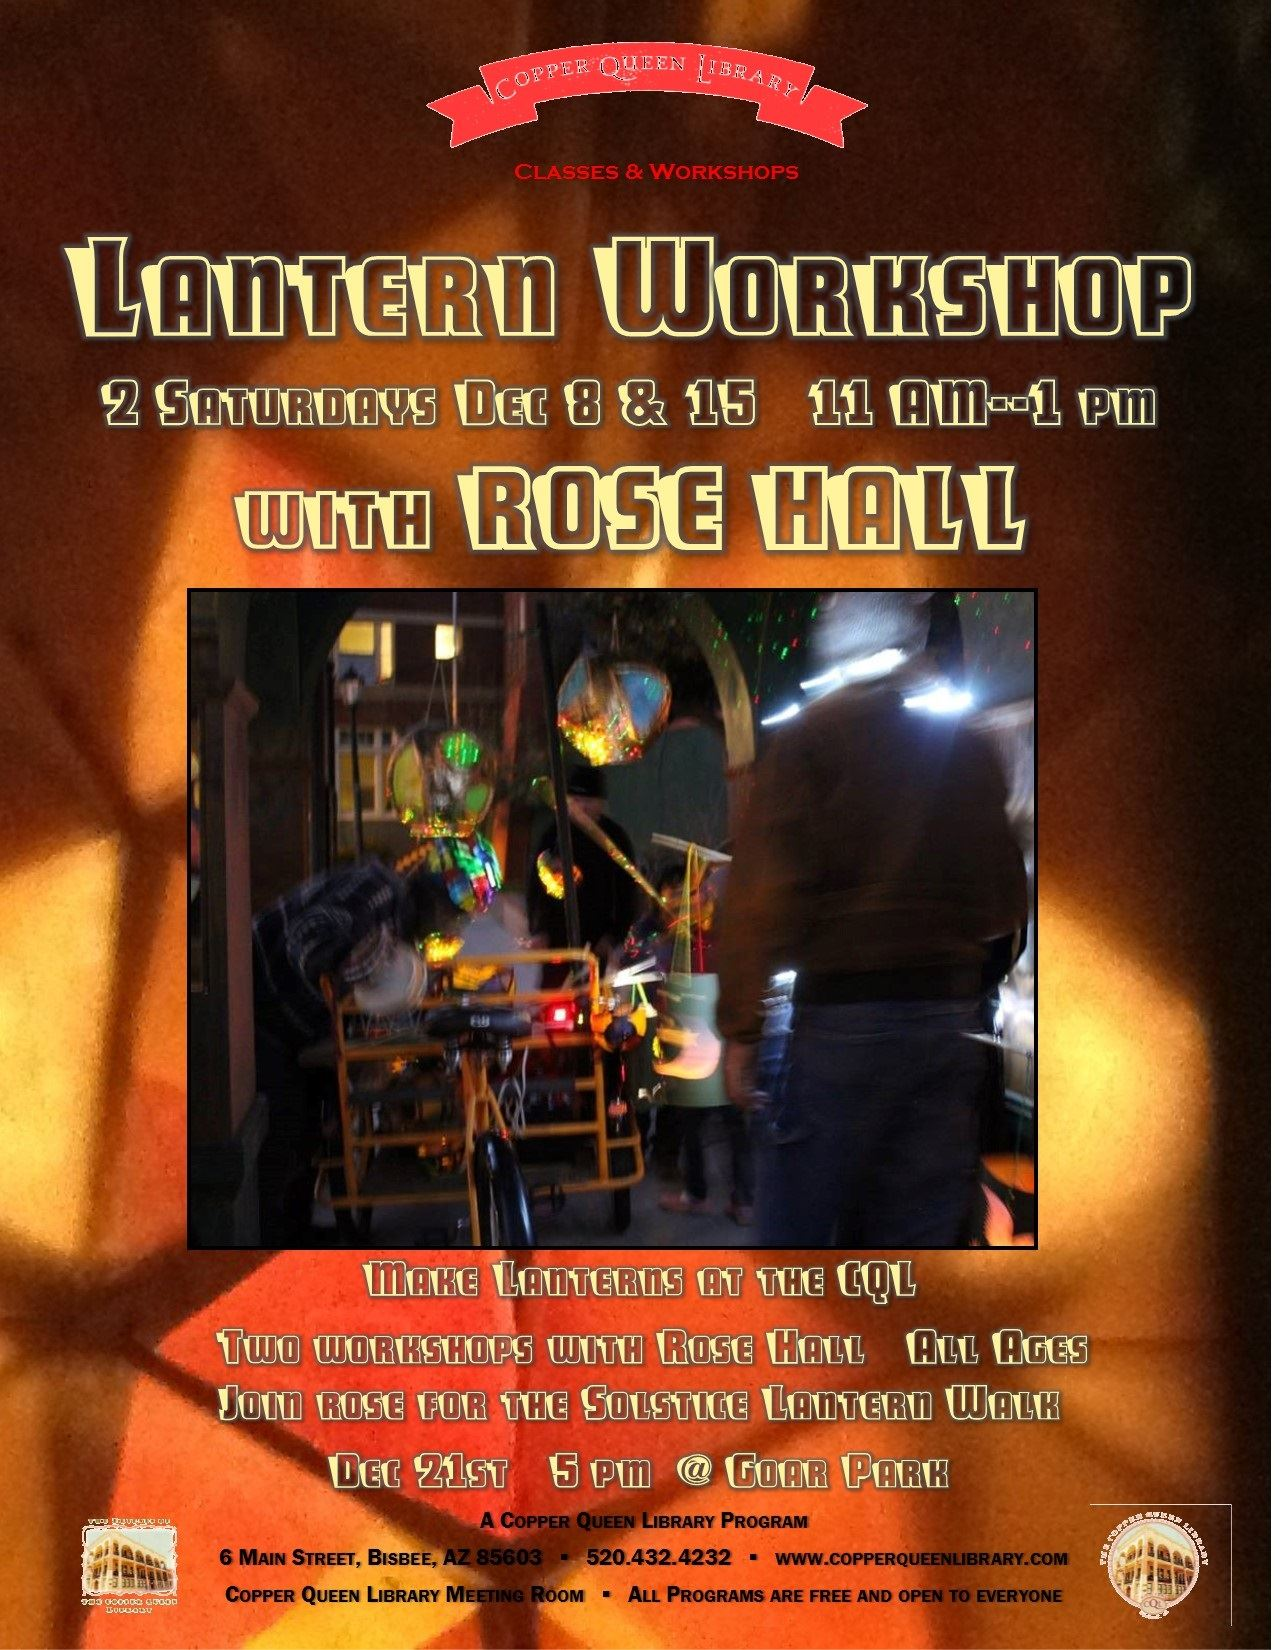 ROSE HALL LANTERN WORKSHOP